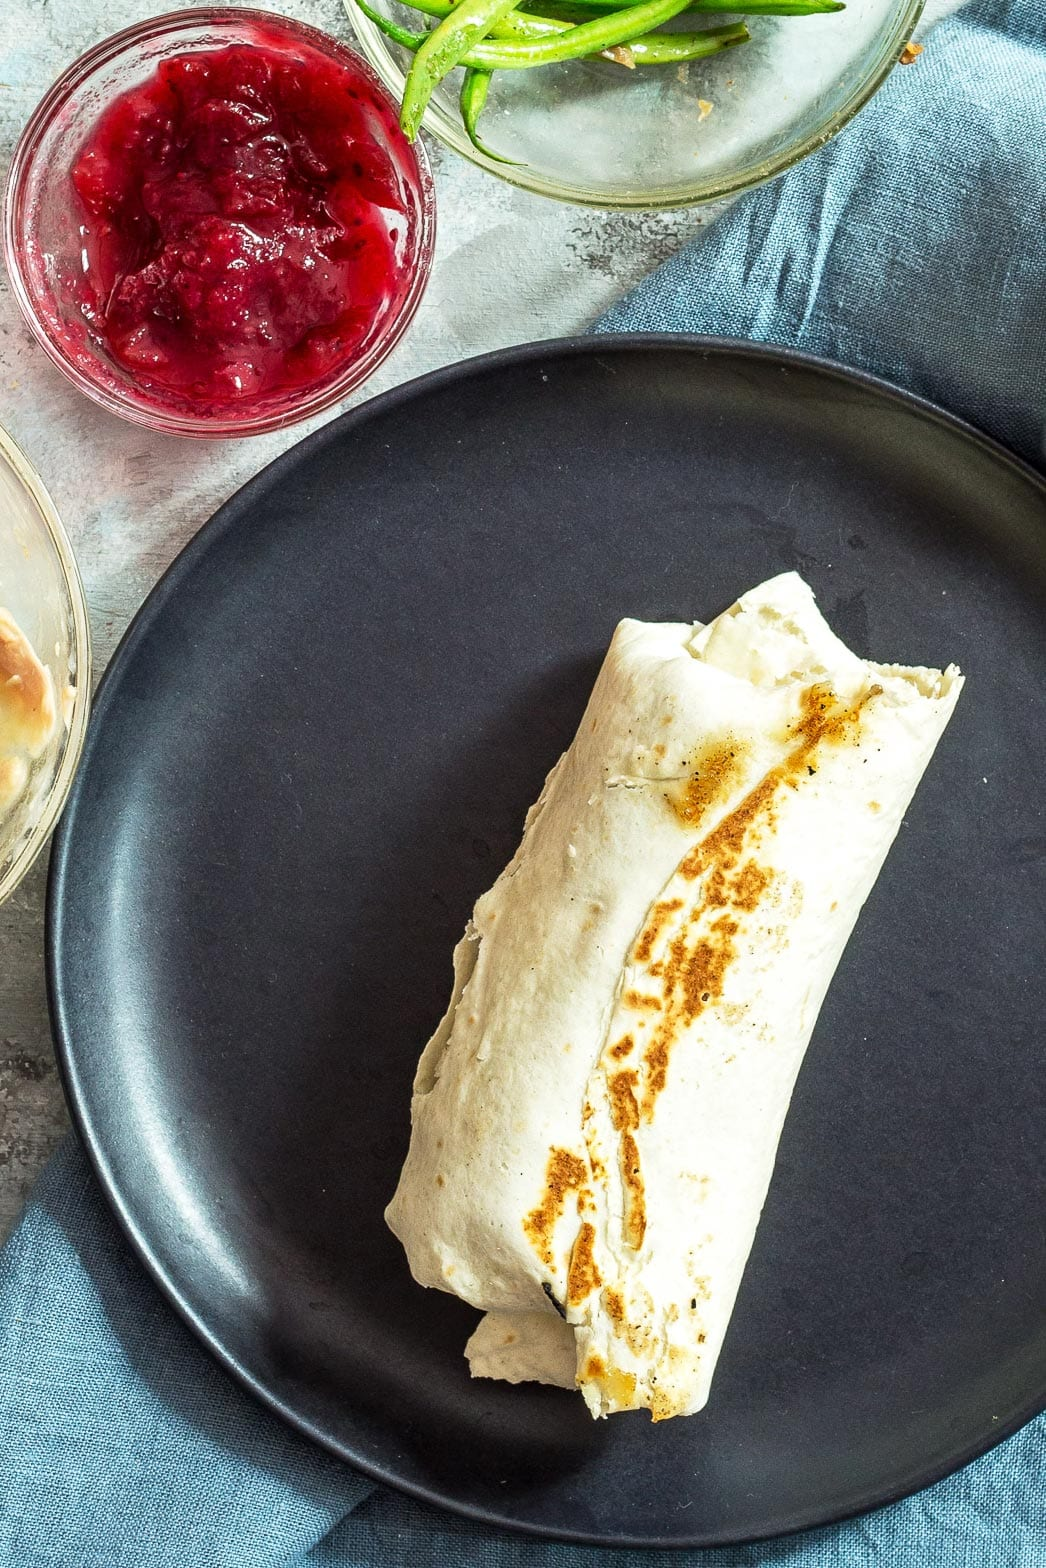 Thanksgiving leftovers wrapped in a burrito